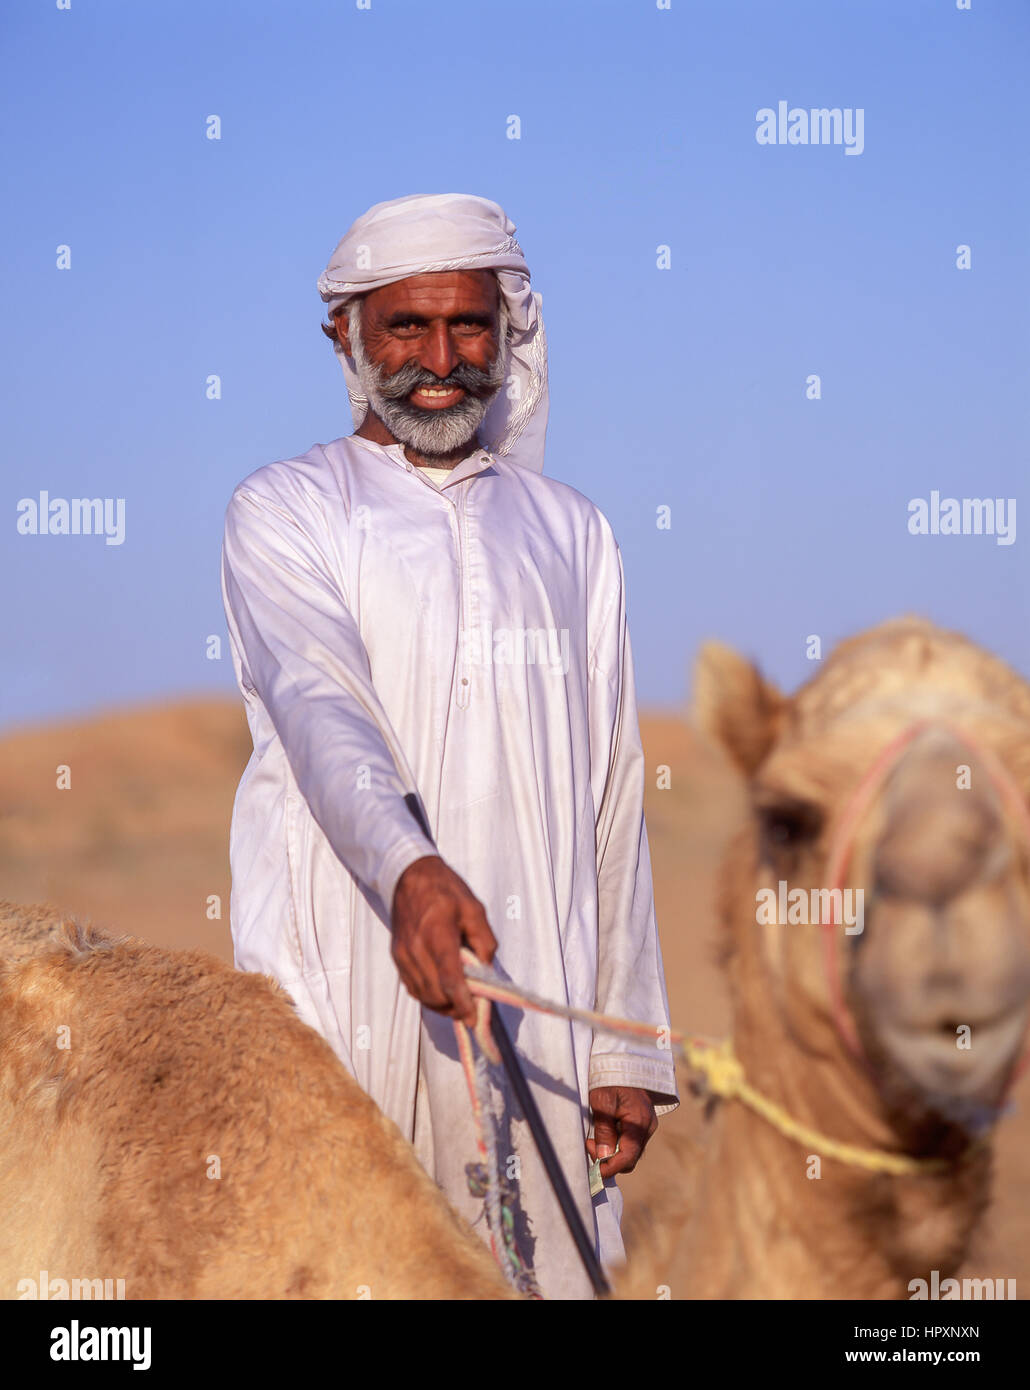 Smiling camel driver with camel, Dubai Desert, Dubai, United Arab Emirates - Stock Image